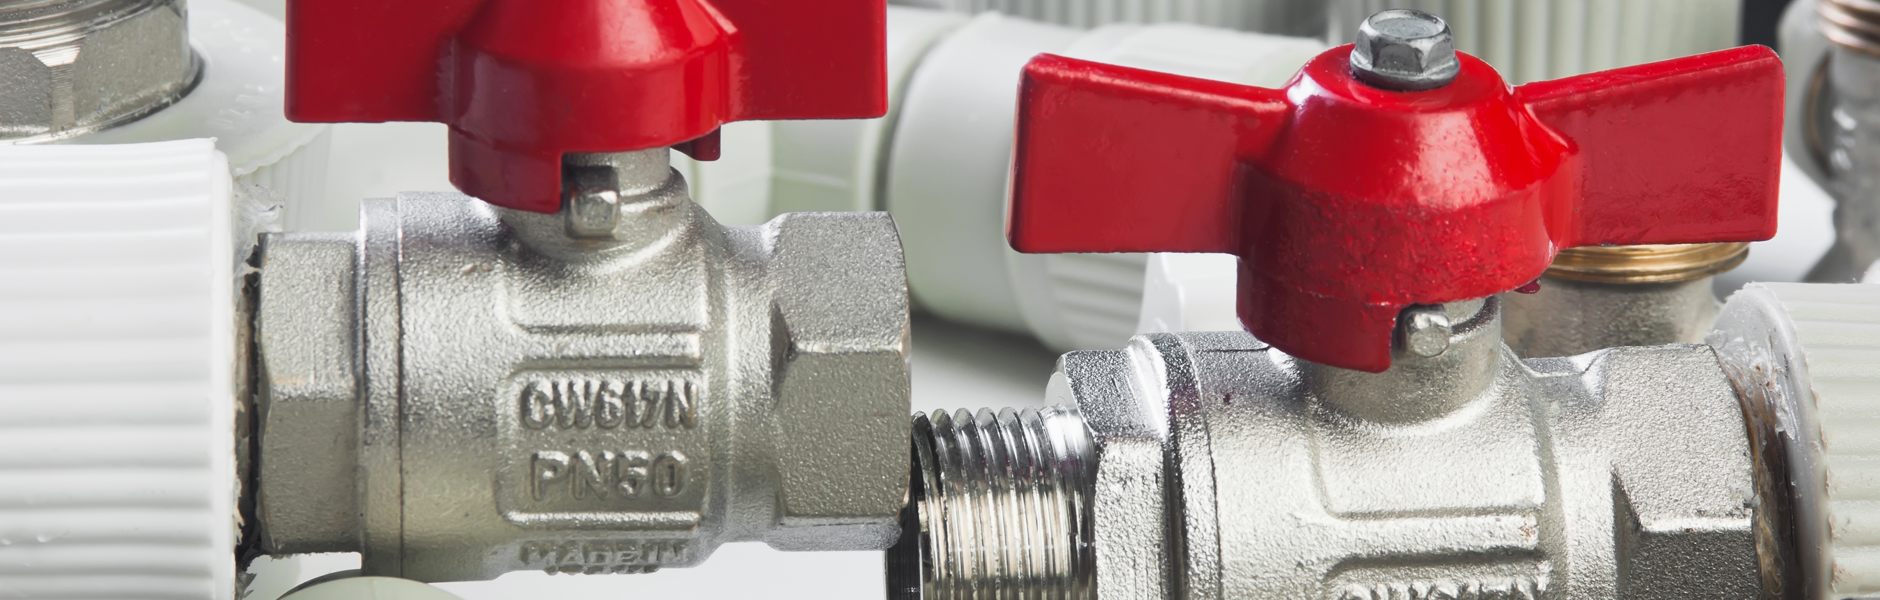 plumbers merchants in scotland serving glasgow and surrounding areas